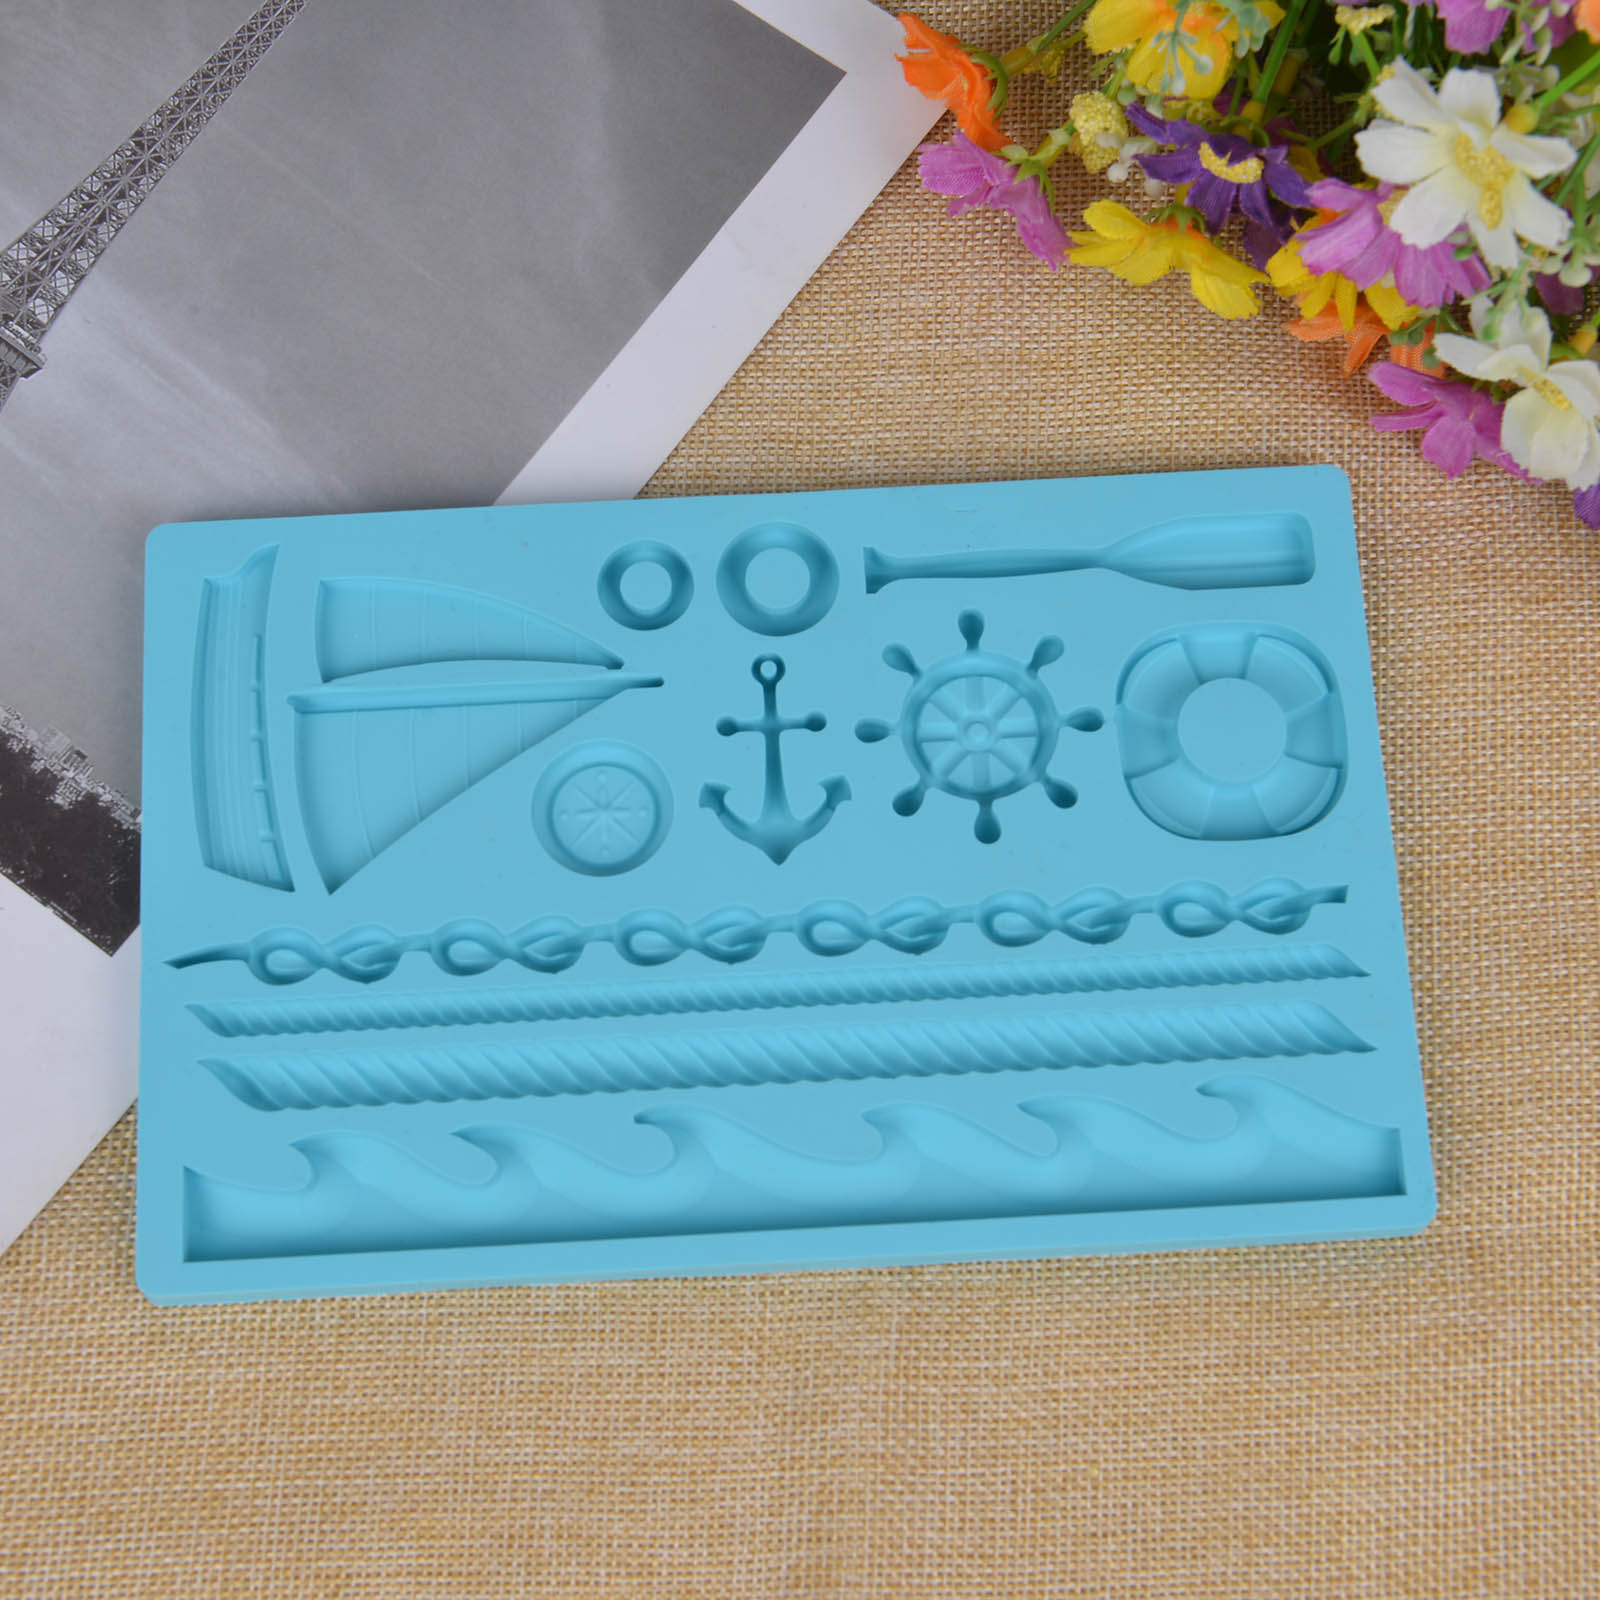 Blue Navy Ocean Style Theme Oars Helmsman Baking Silicone Sailboat Mold Cake Decorating Fondant Chocolate Ice Reusable Safe Tool